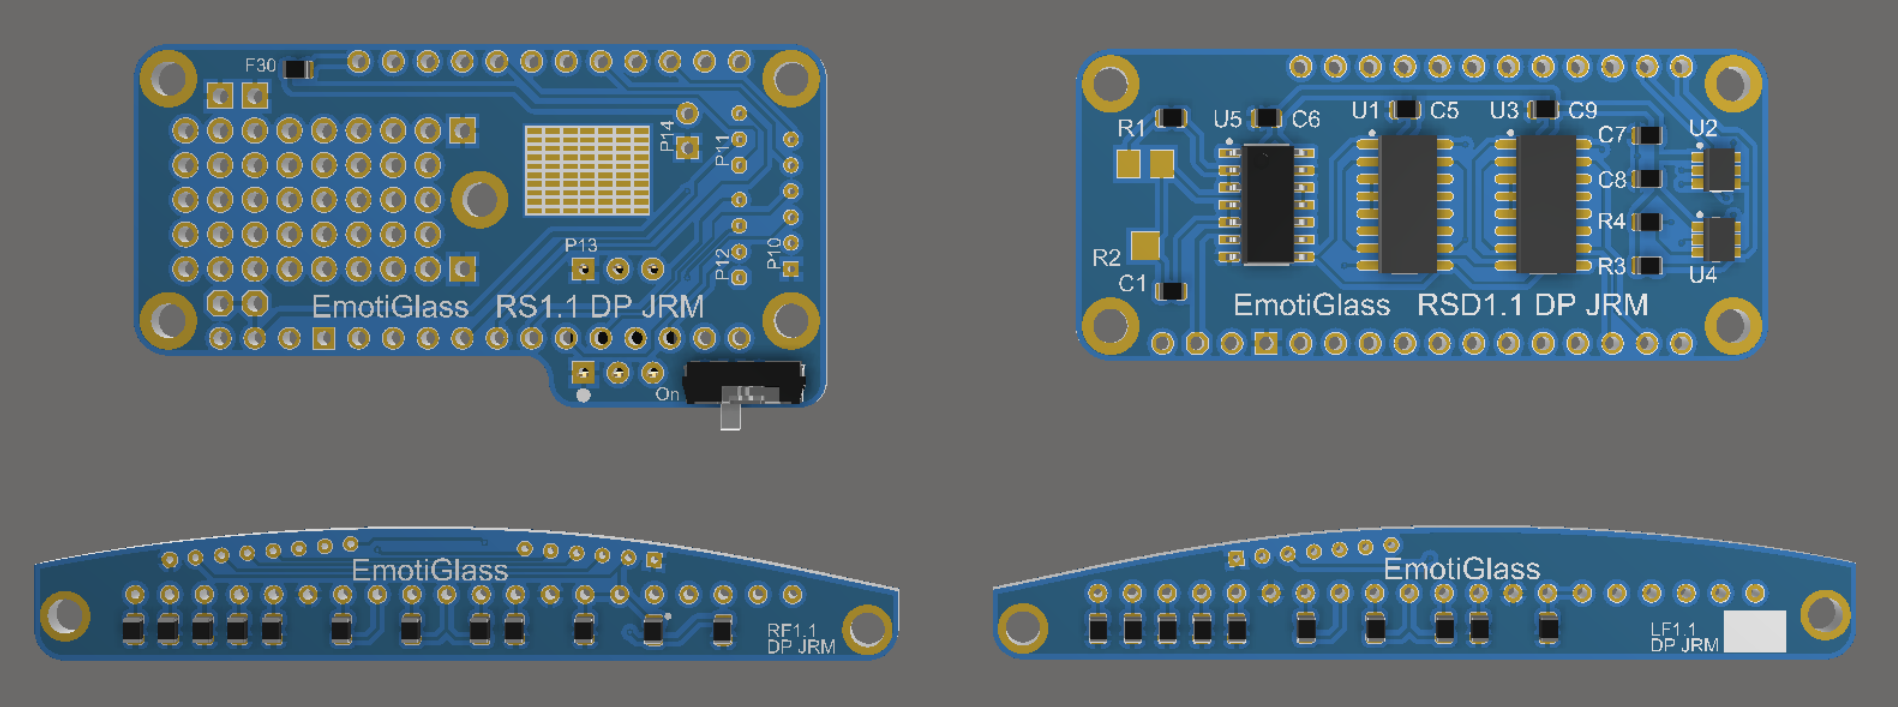 wearable prototype schematics and pcb layouts finalized detailswe\u0027ve been making a lot of exciting progress towards the completion of the wearable prototype design the wearable prototype schematics have been finalized